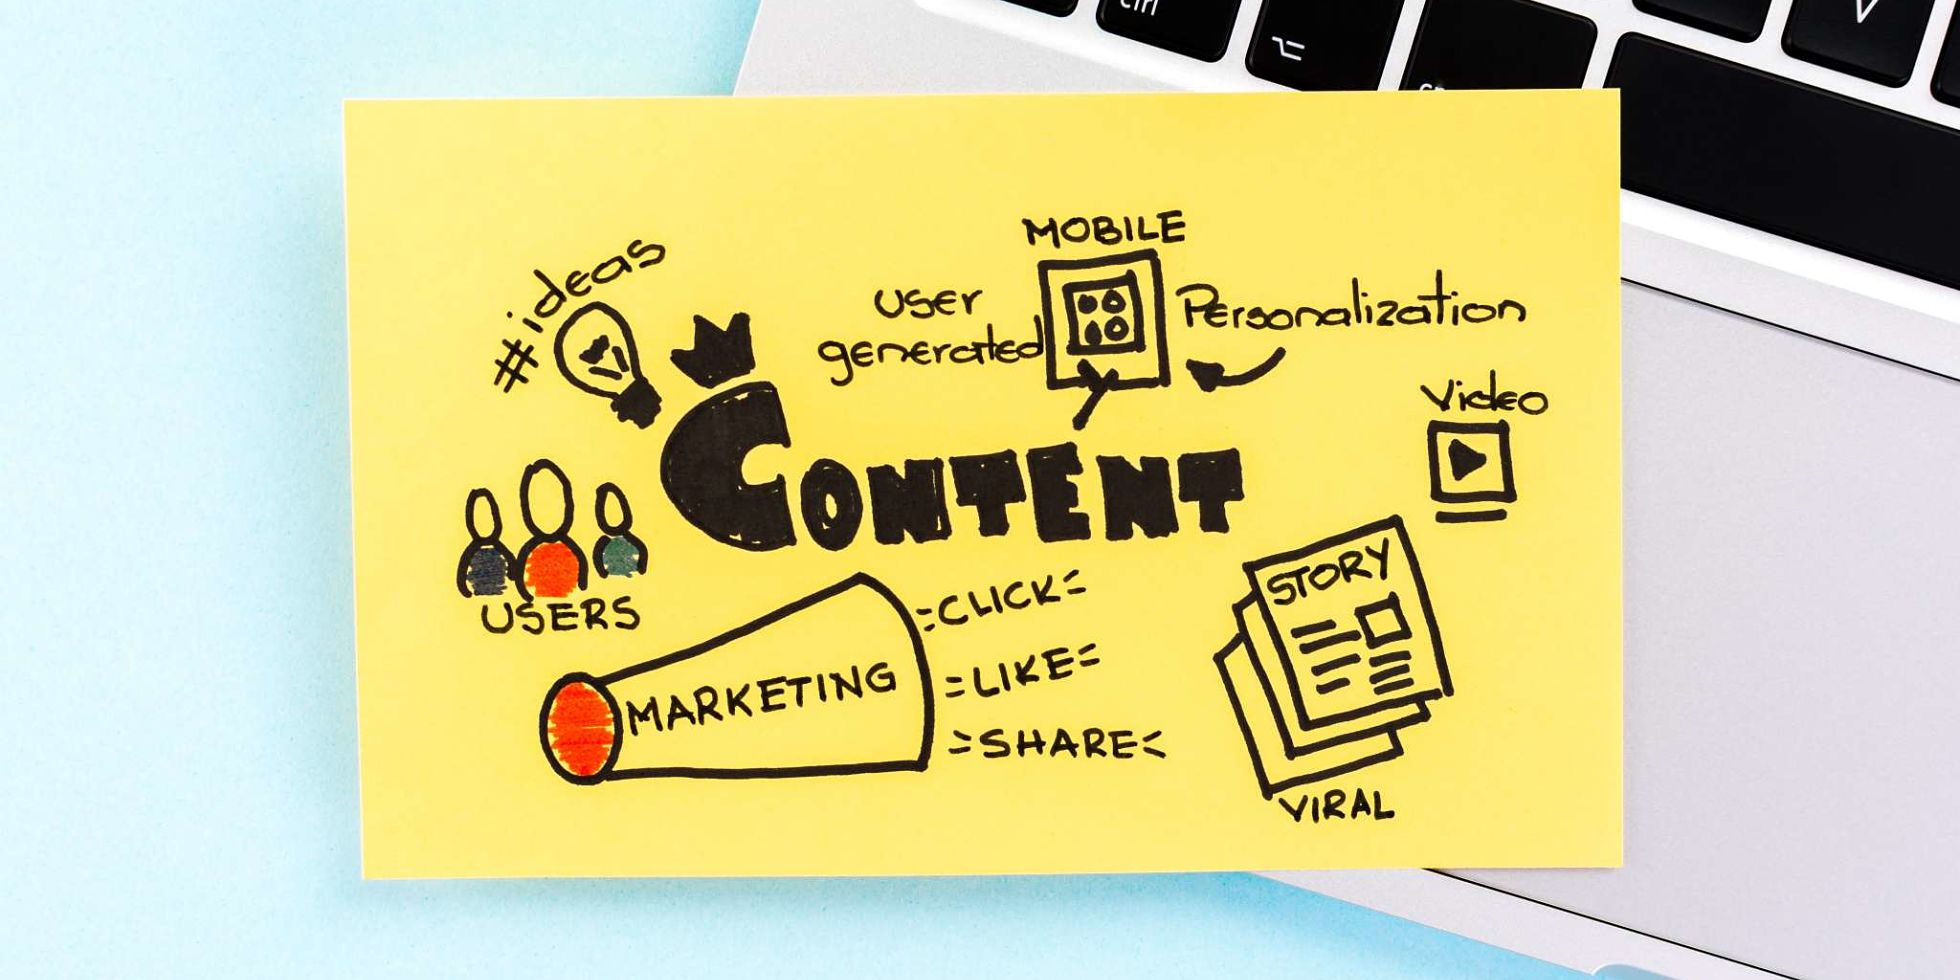 The Team brand and communications agency. Five tips to bring your brand to life with content